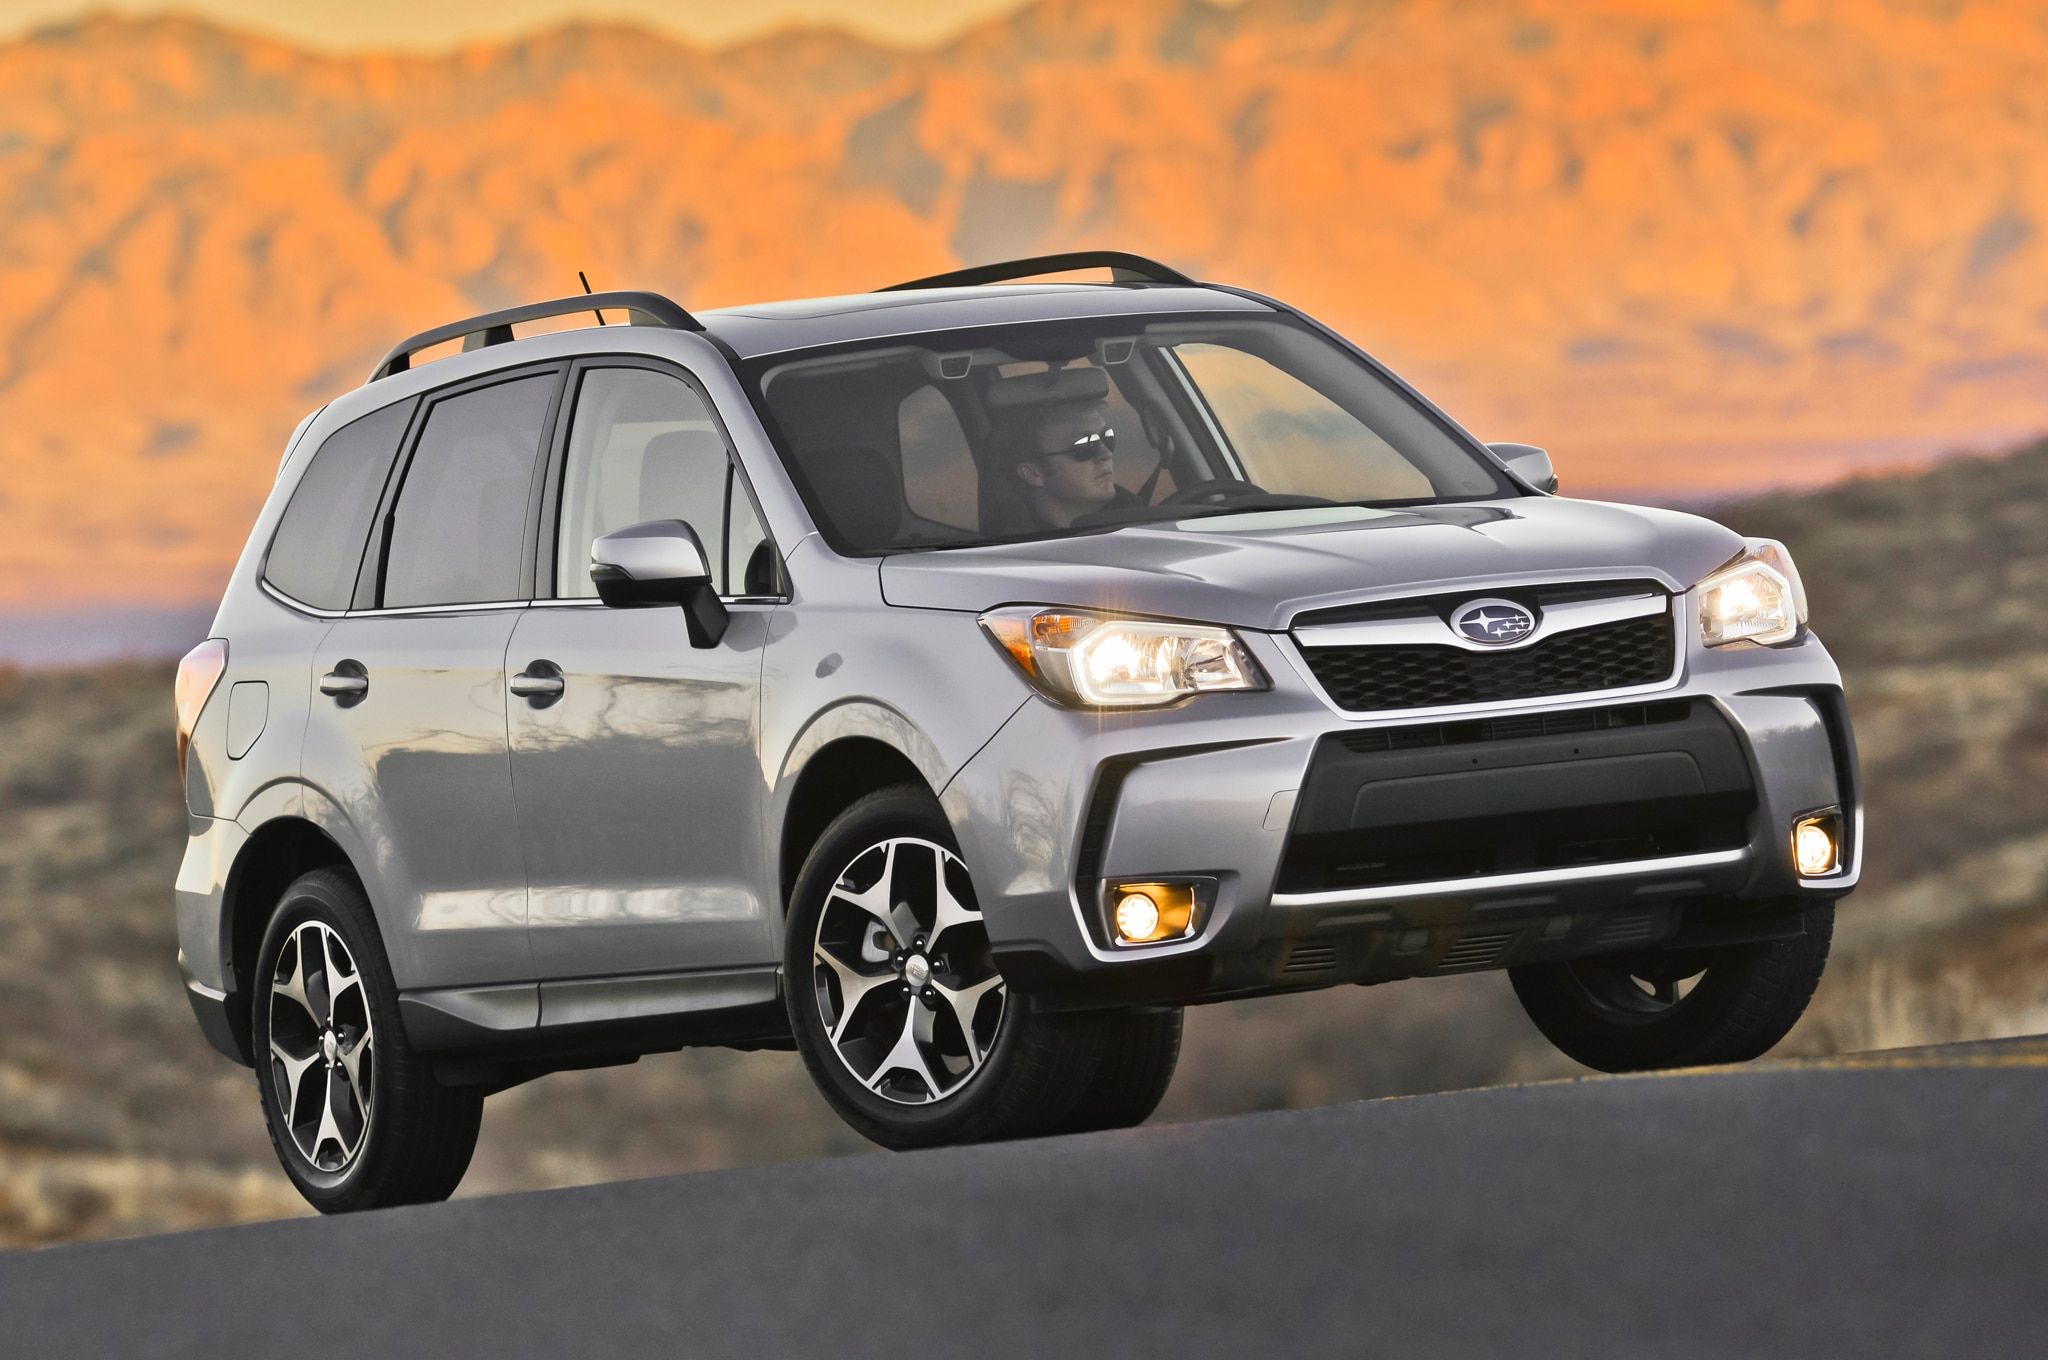 2015 subaru forester updated starts at 23 045 automobile magazine. Black Bedroom Furniture Sets. Home Design Ideas